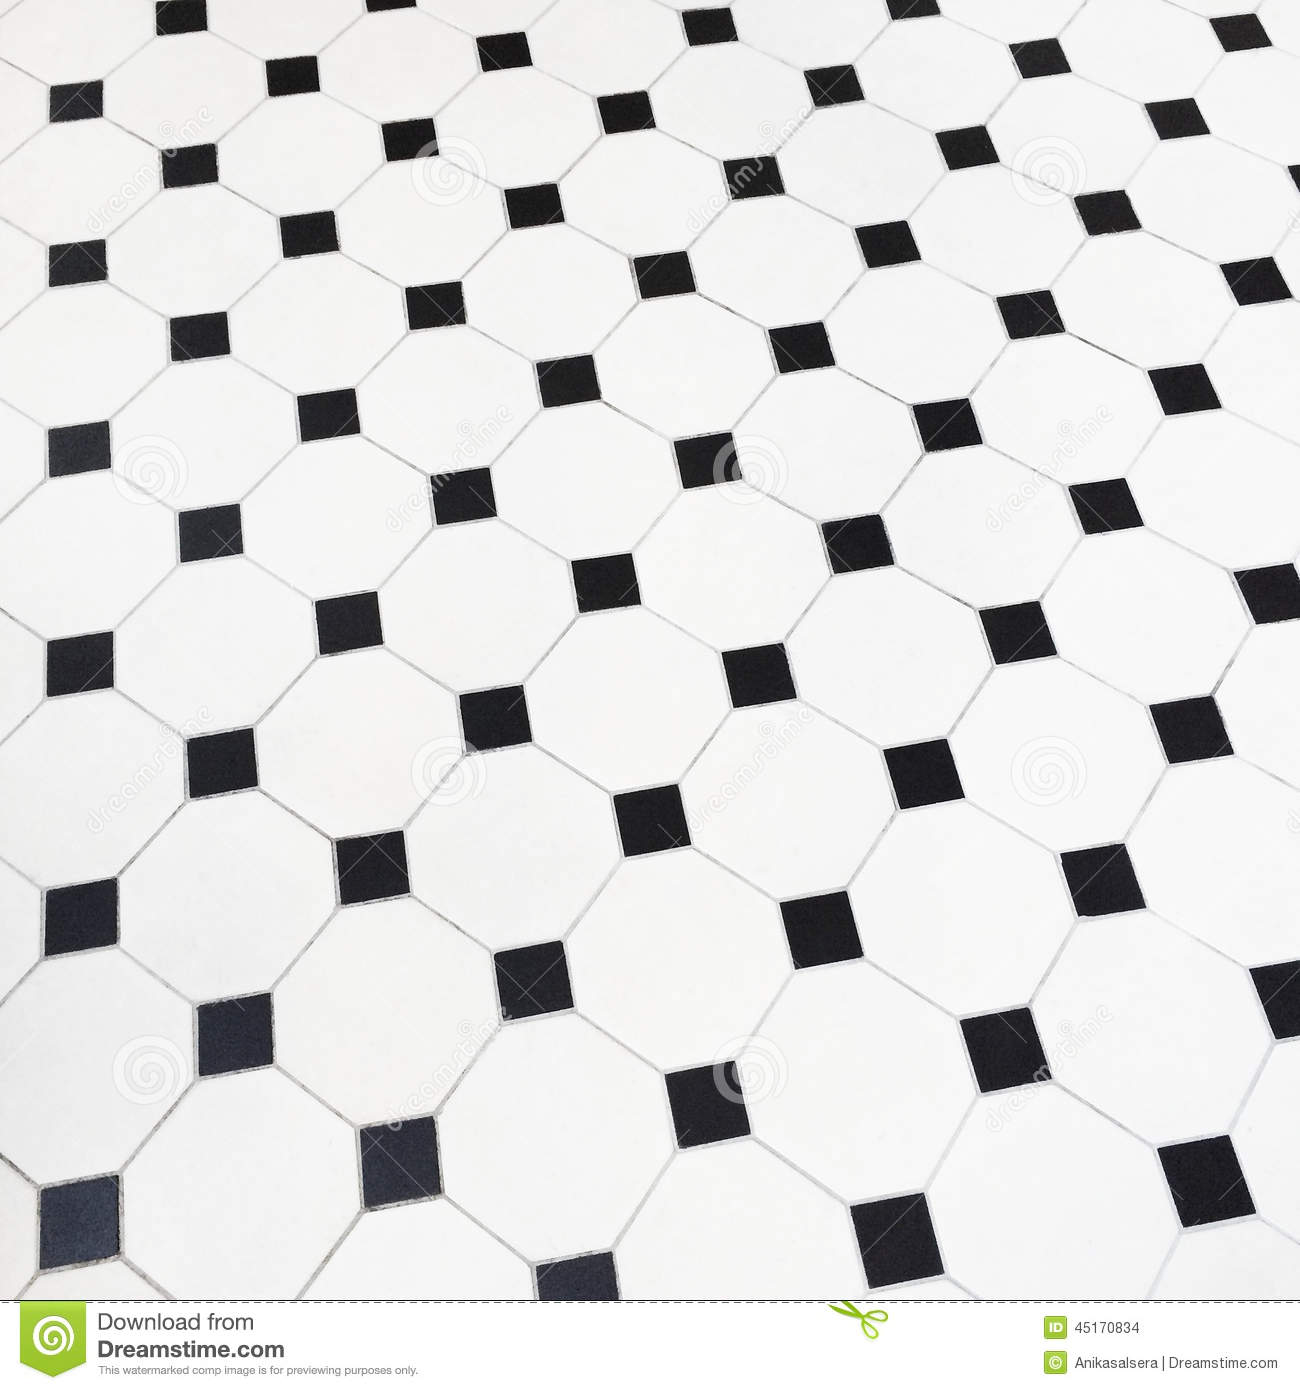 black and white tile floor. Royalty Free Stock Photo  Download Black And White Ceramic Tiles Floor Image 45170834